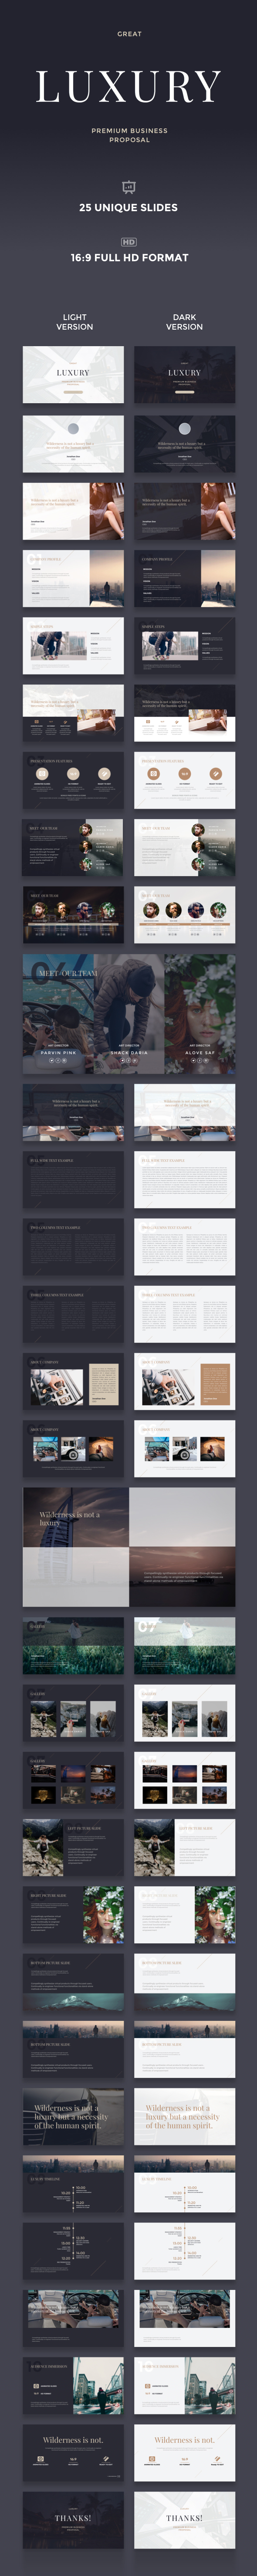 Great Luxury Premium Business Proposal - Keynote Template - Business Keynote Templates